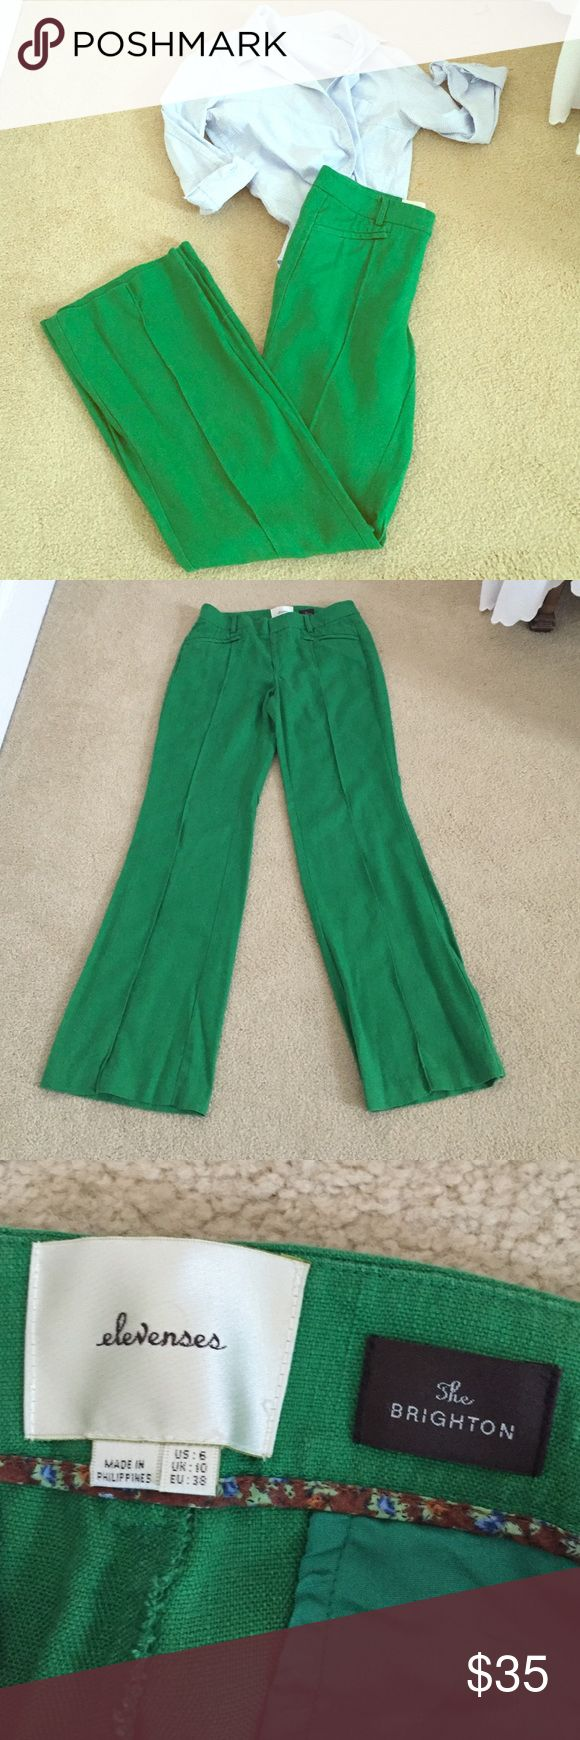 """Kelly Green Pants Amazing kelly green pants from Anthropologie. Size 6. Waist measures about 15.25"""" across. Mid to high-rise (9""""). Inseam measures 31"""". Fabric: 70% tencel/30% linen. Very slight pilling on inner thigh (see pic). Anthropologie Pants Boot Cut & Flare"""